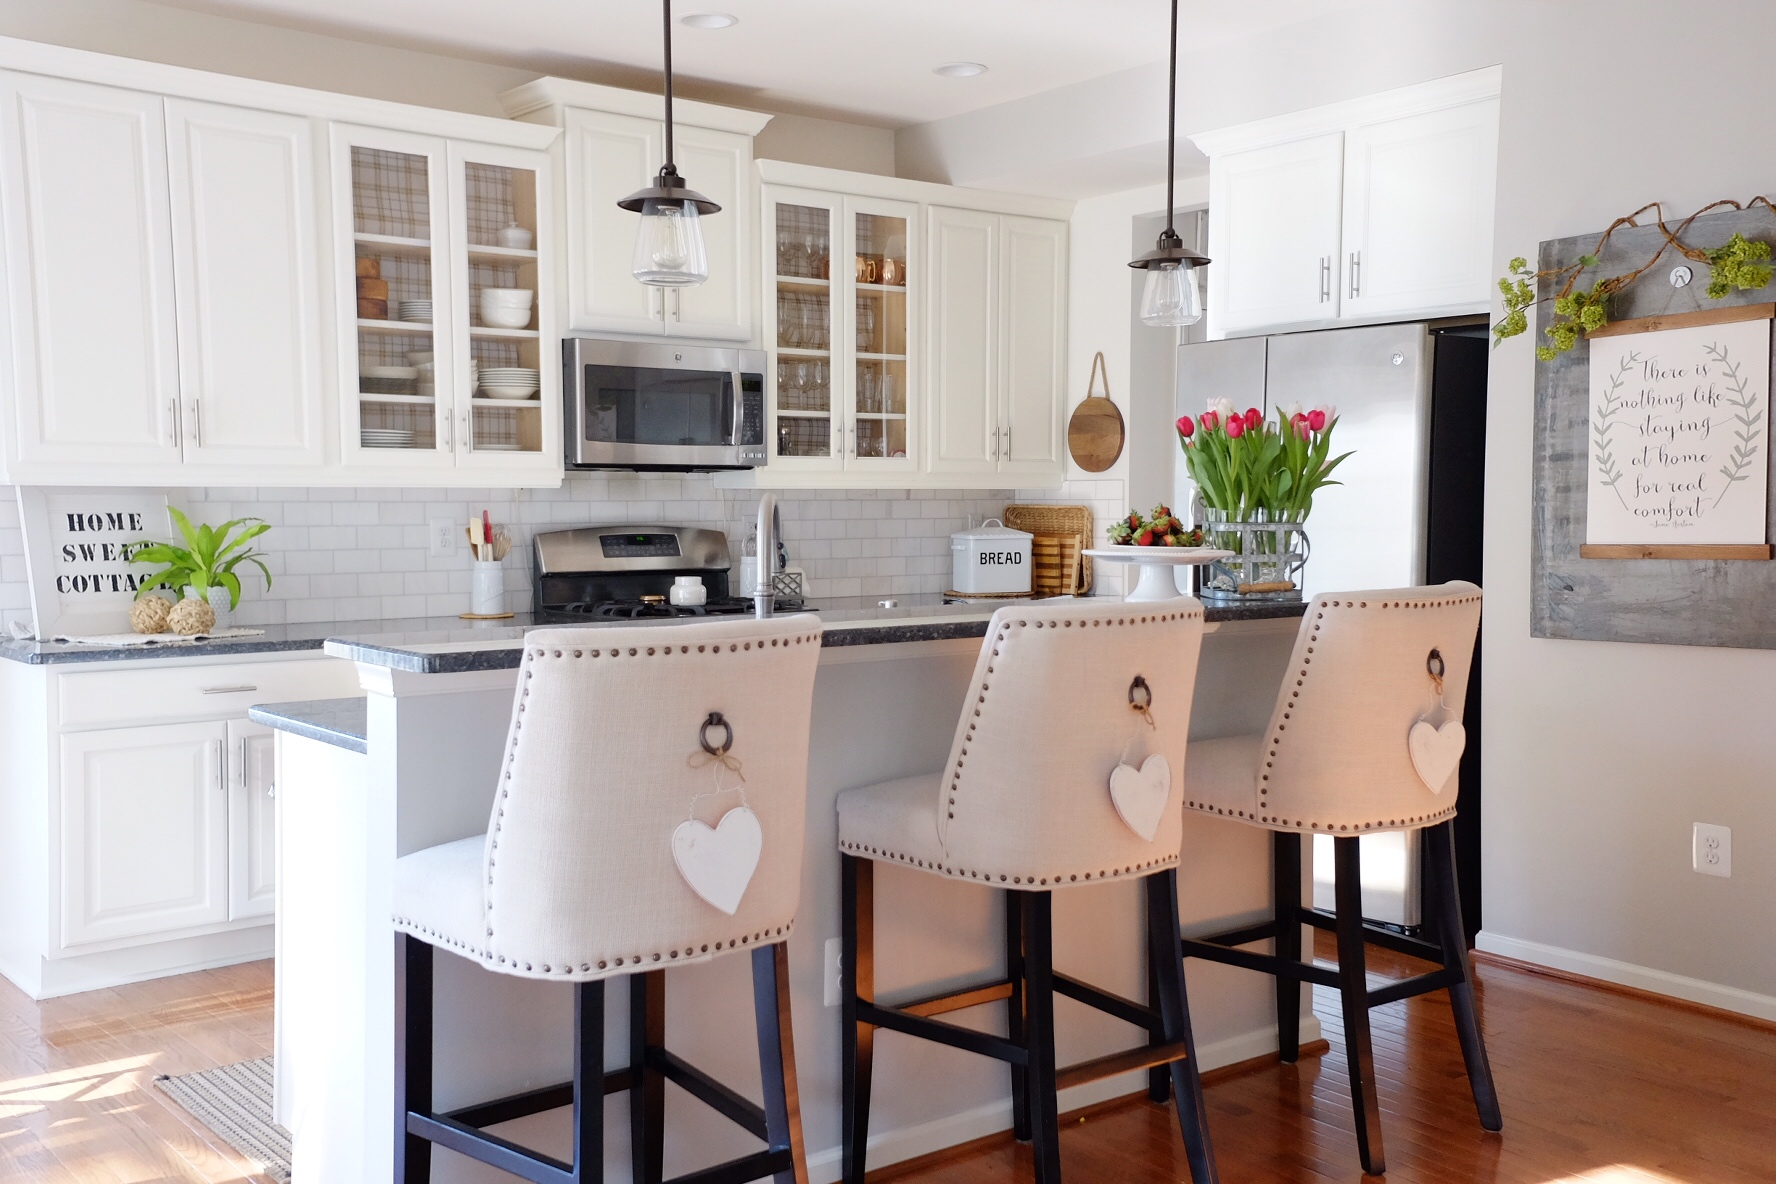 Paint: Shell White SW 917 (Satin finish); canvas Print: The wooded lane; Pendant lights: lowes